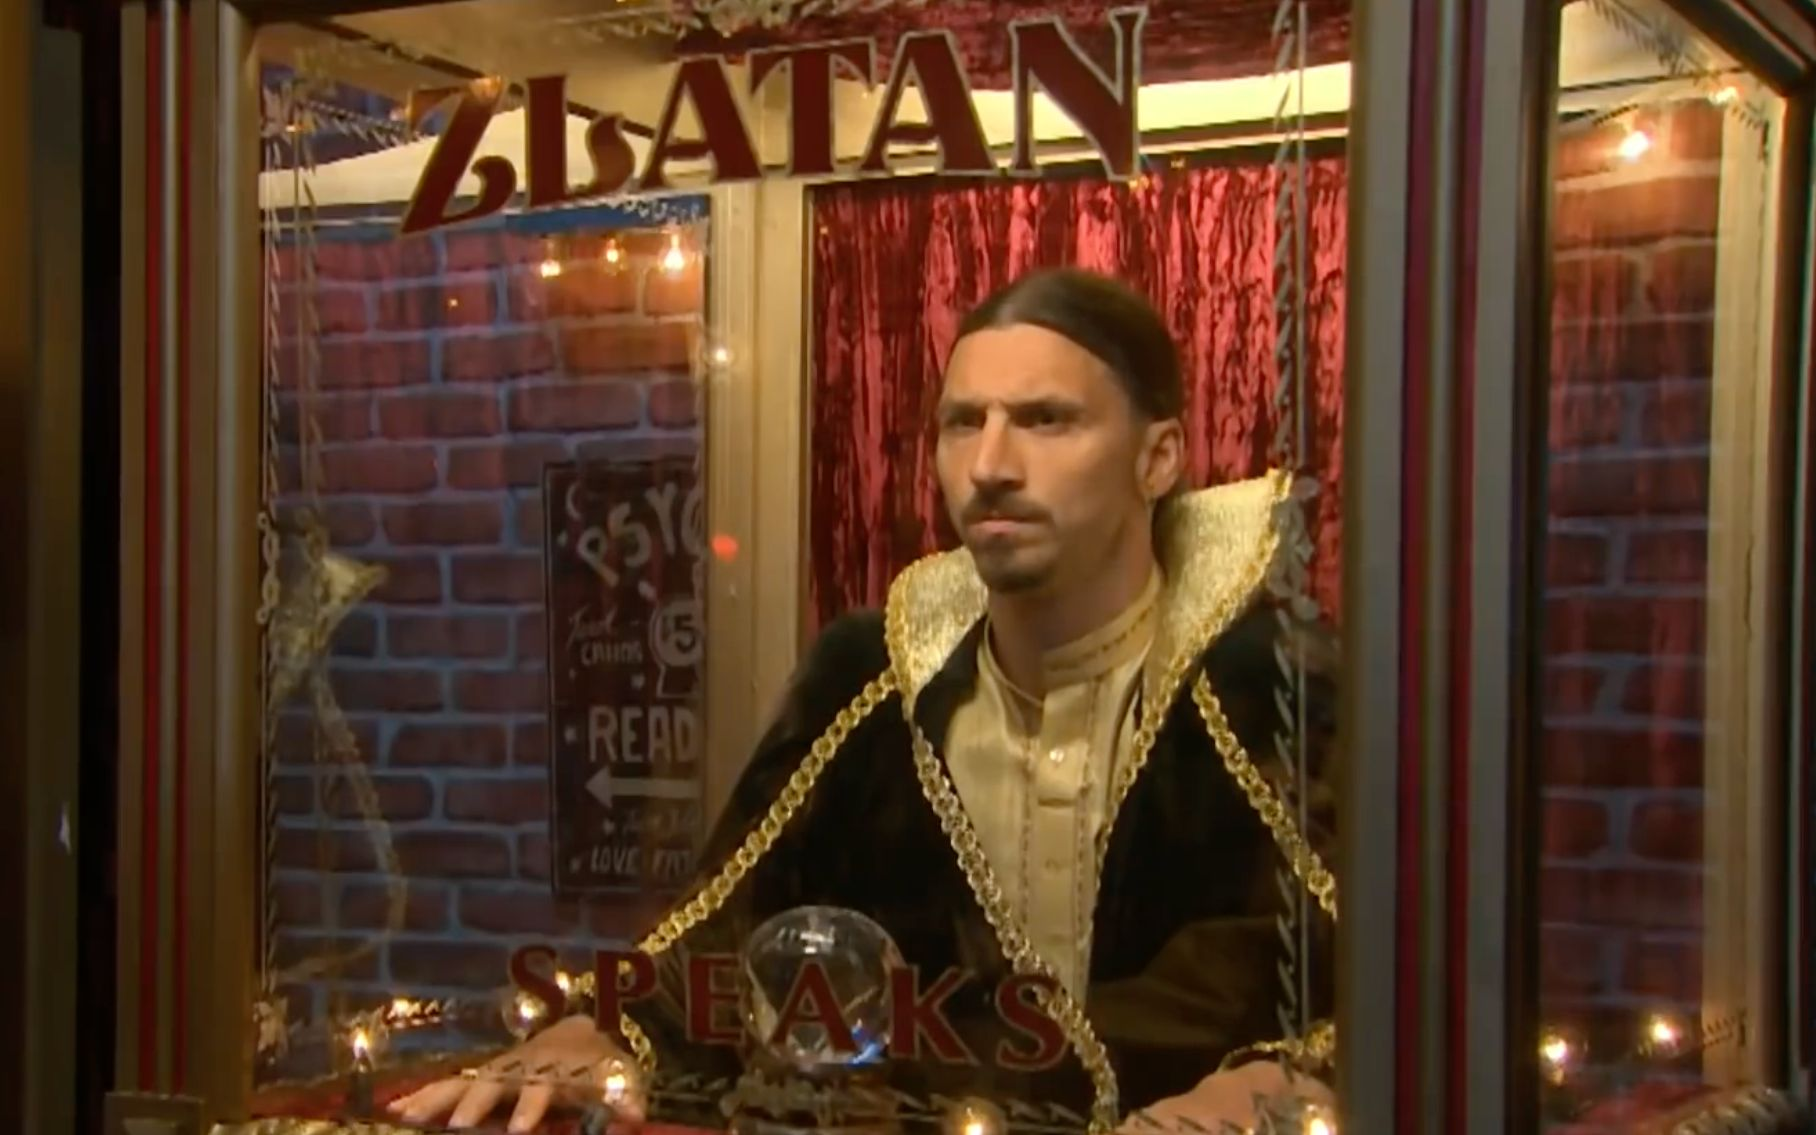 伊布 - 宇宙最强的预言家 Zlatan Ibrahimovic- The Universe's Best Fortune Teller